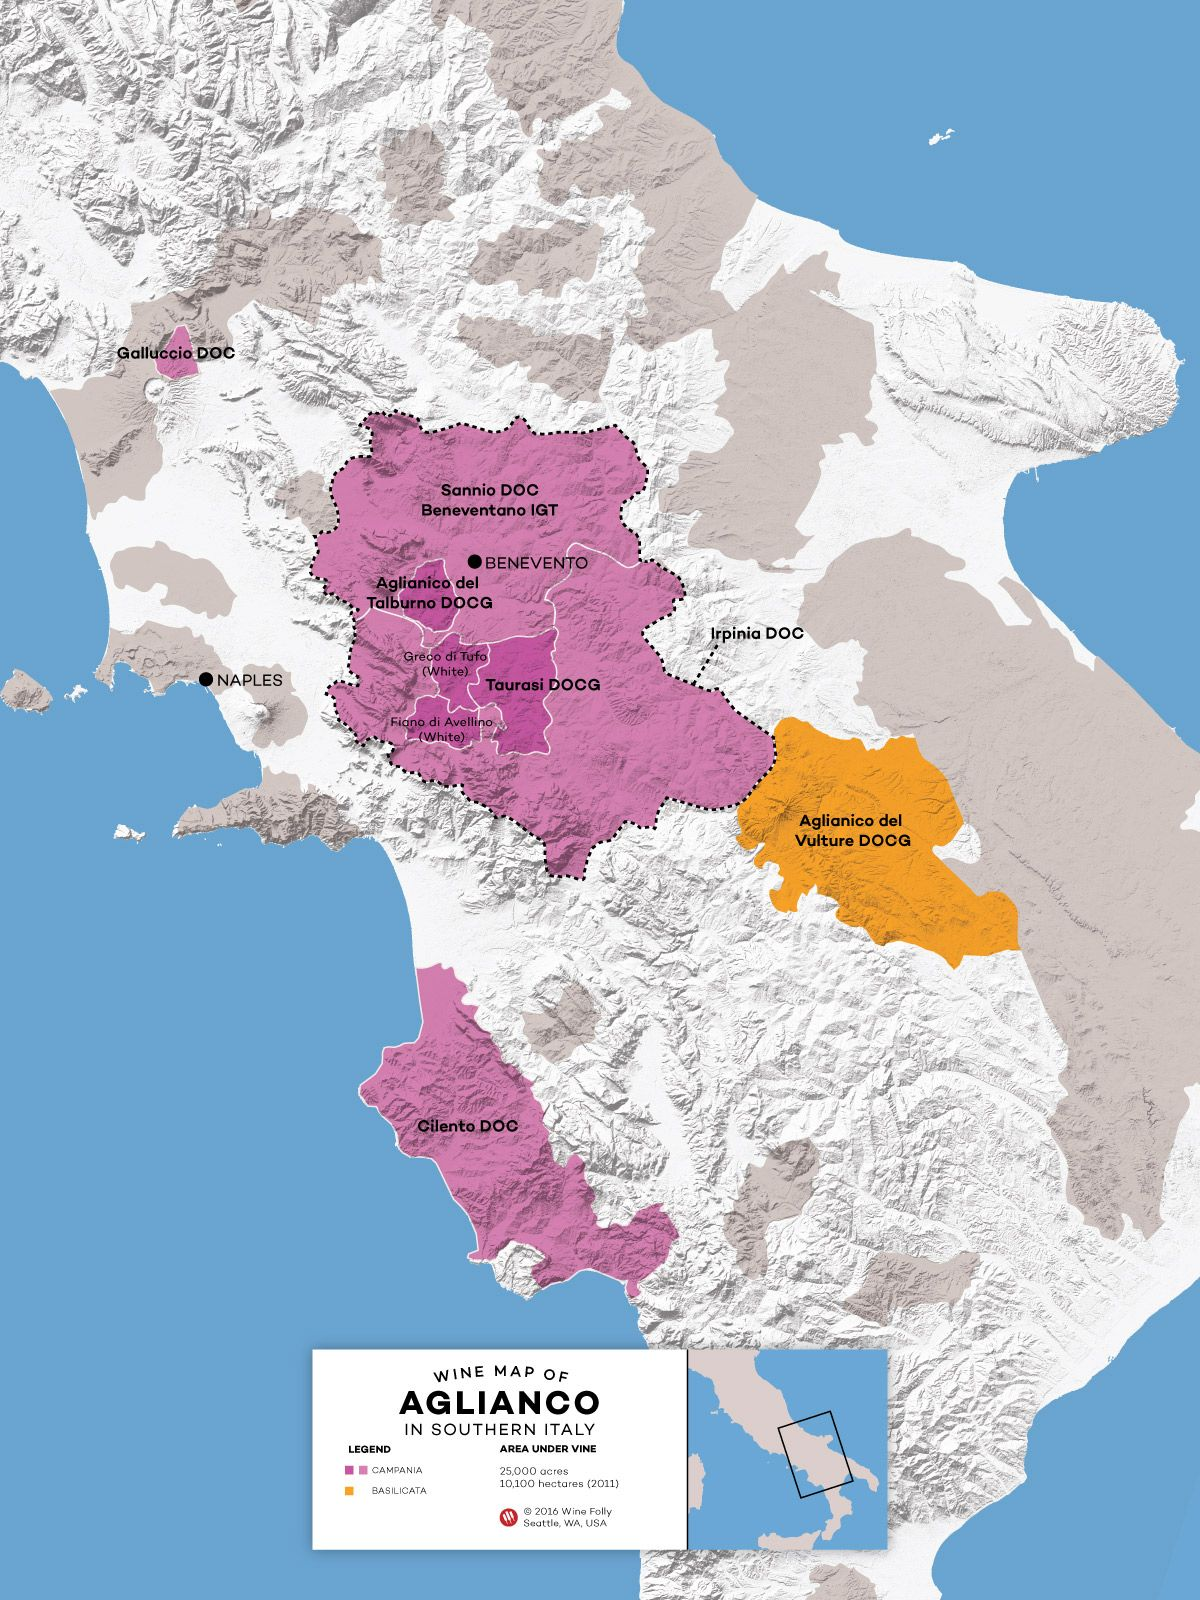 All About Aglianico Wine From Taste to Pairing Southern italy map